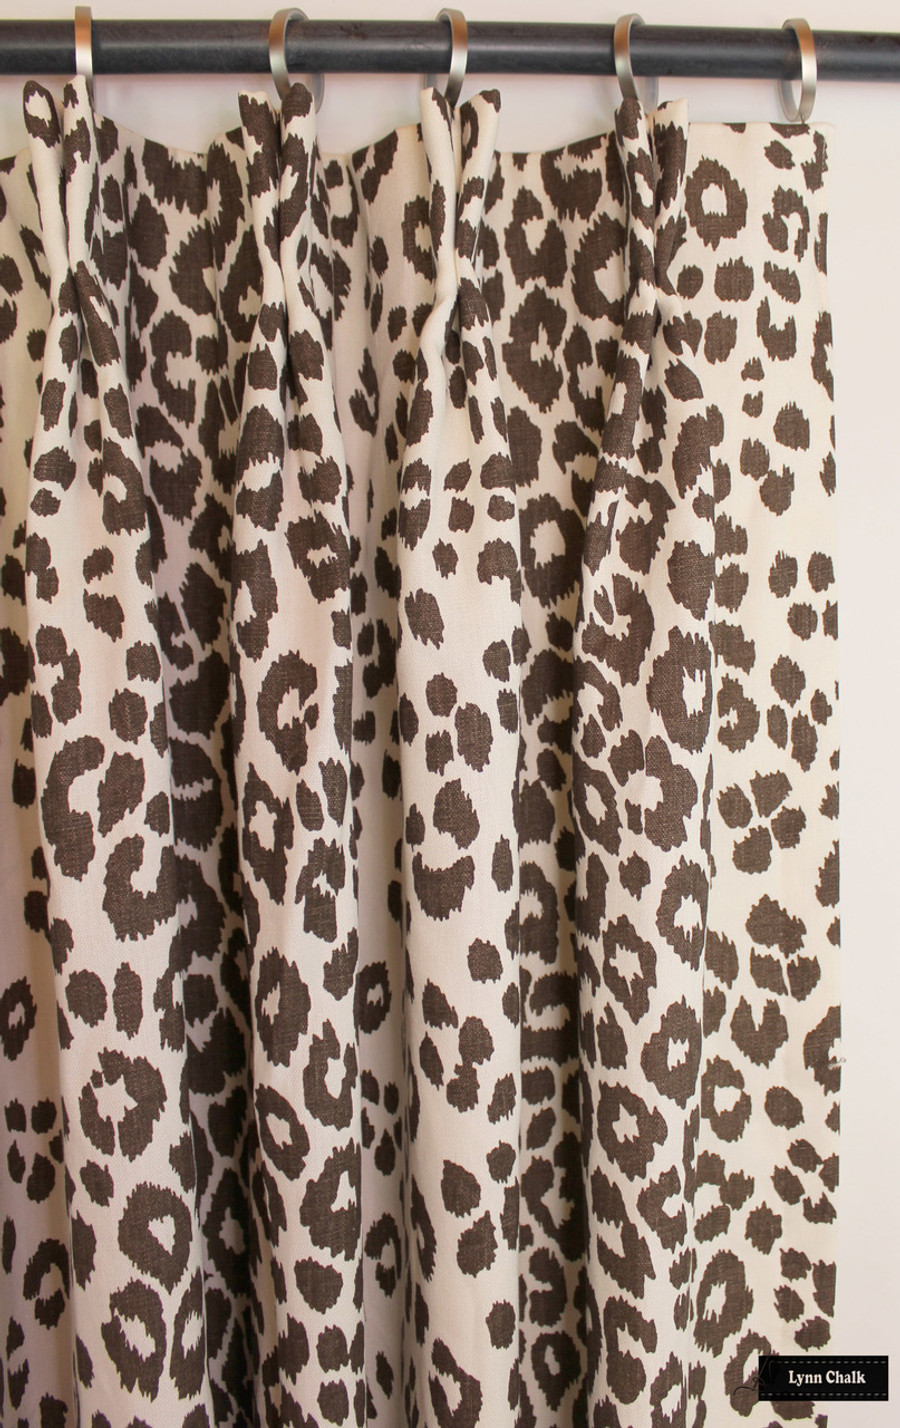 Schumacher Iconic Leopard Pillows in Linen - (comes in other colors) 2 Pillow Minimum Order